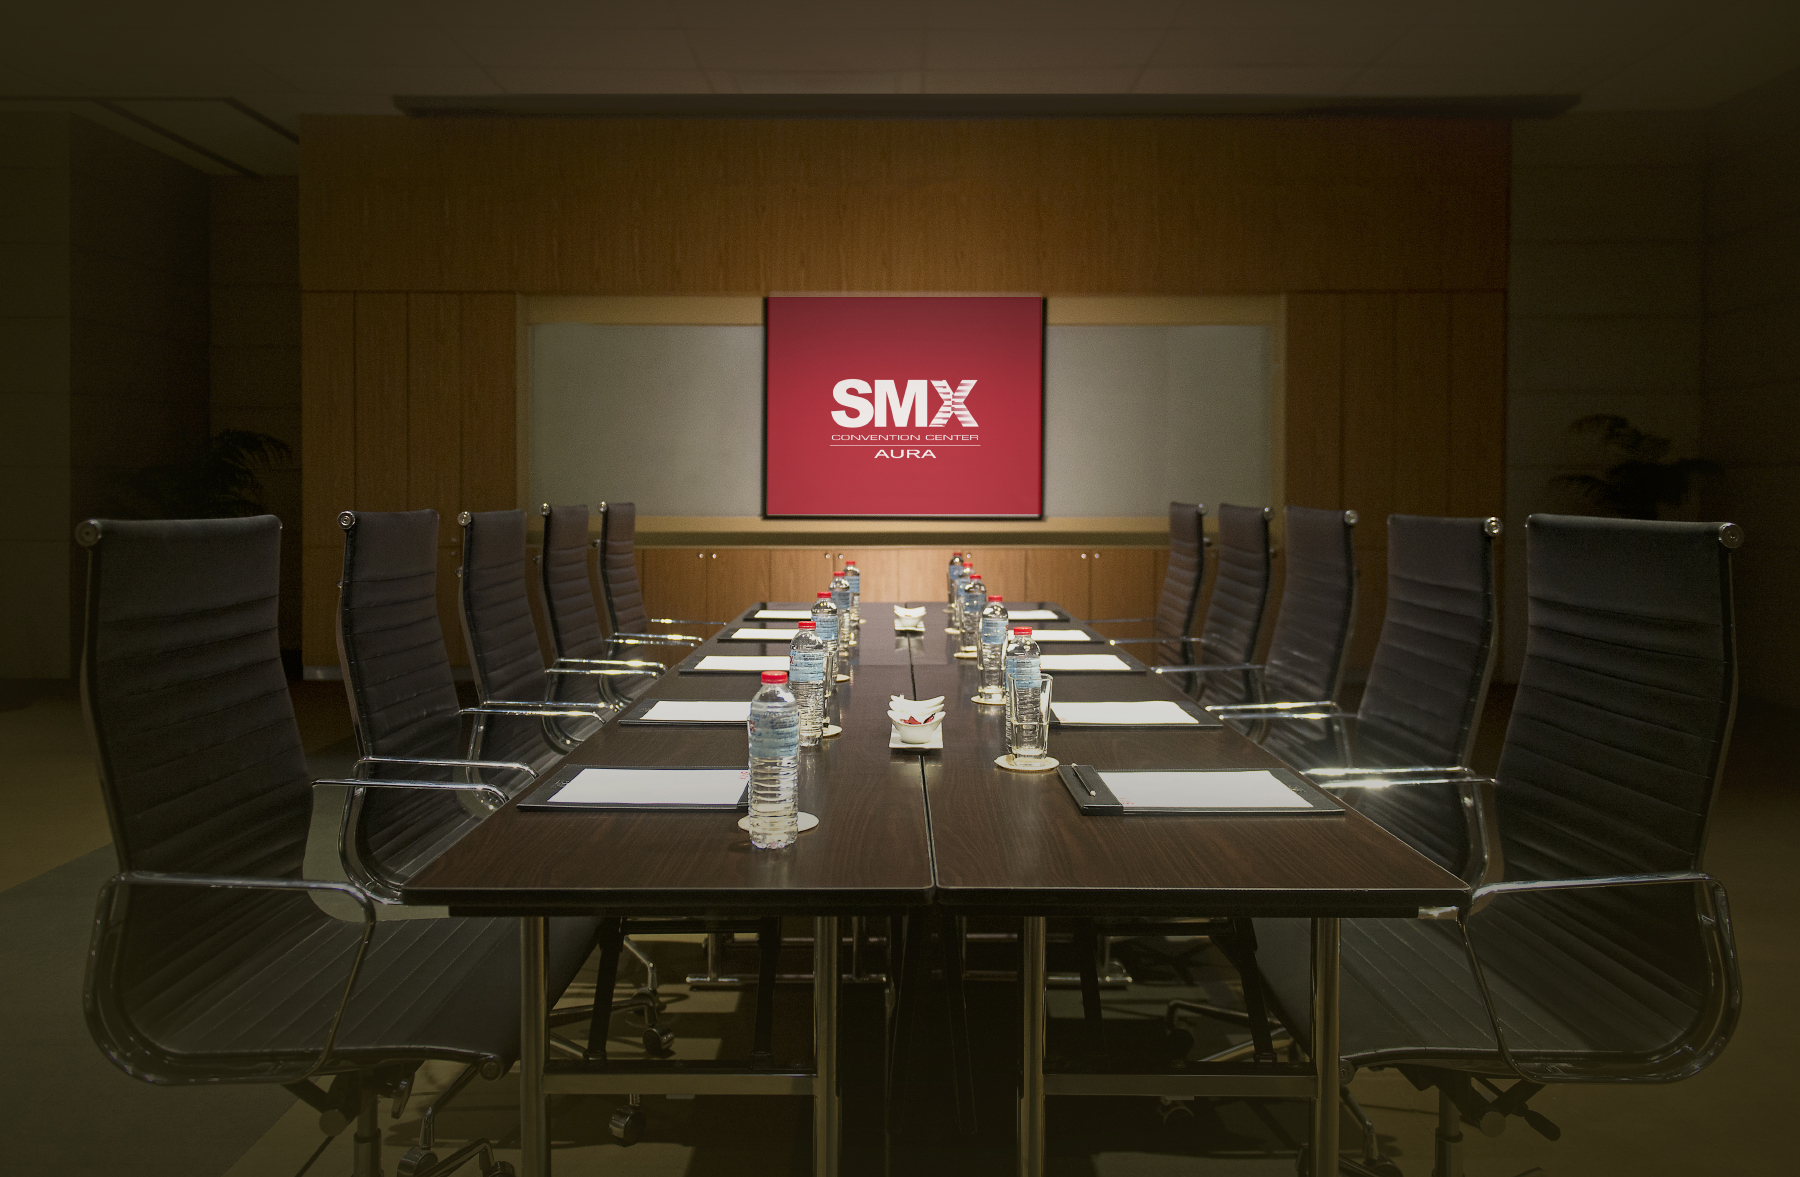 ideal for all types of event smx aura offers 3 function rooms and 8 meeting rooms totaling 3137 square meters of leasable space that can accommodate